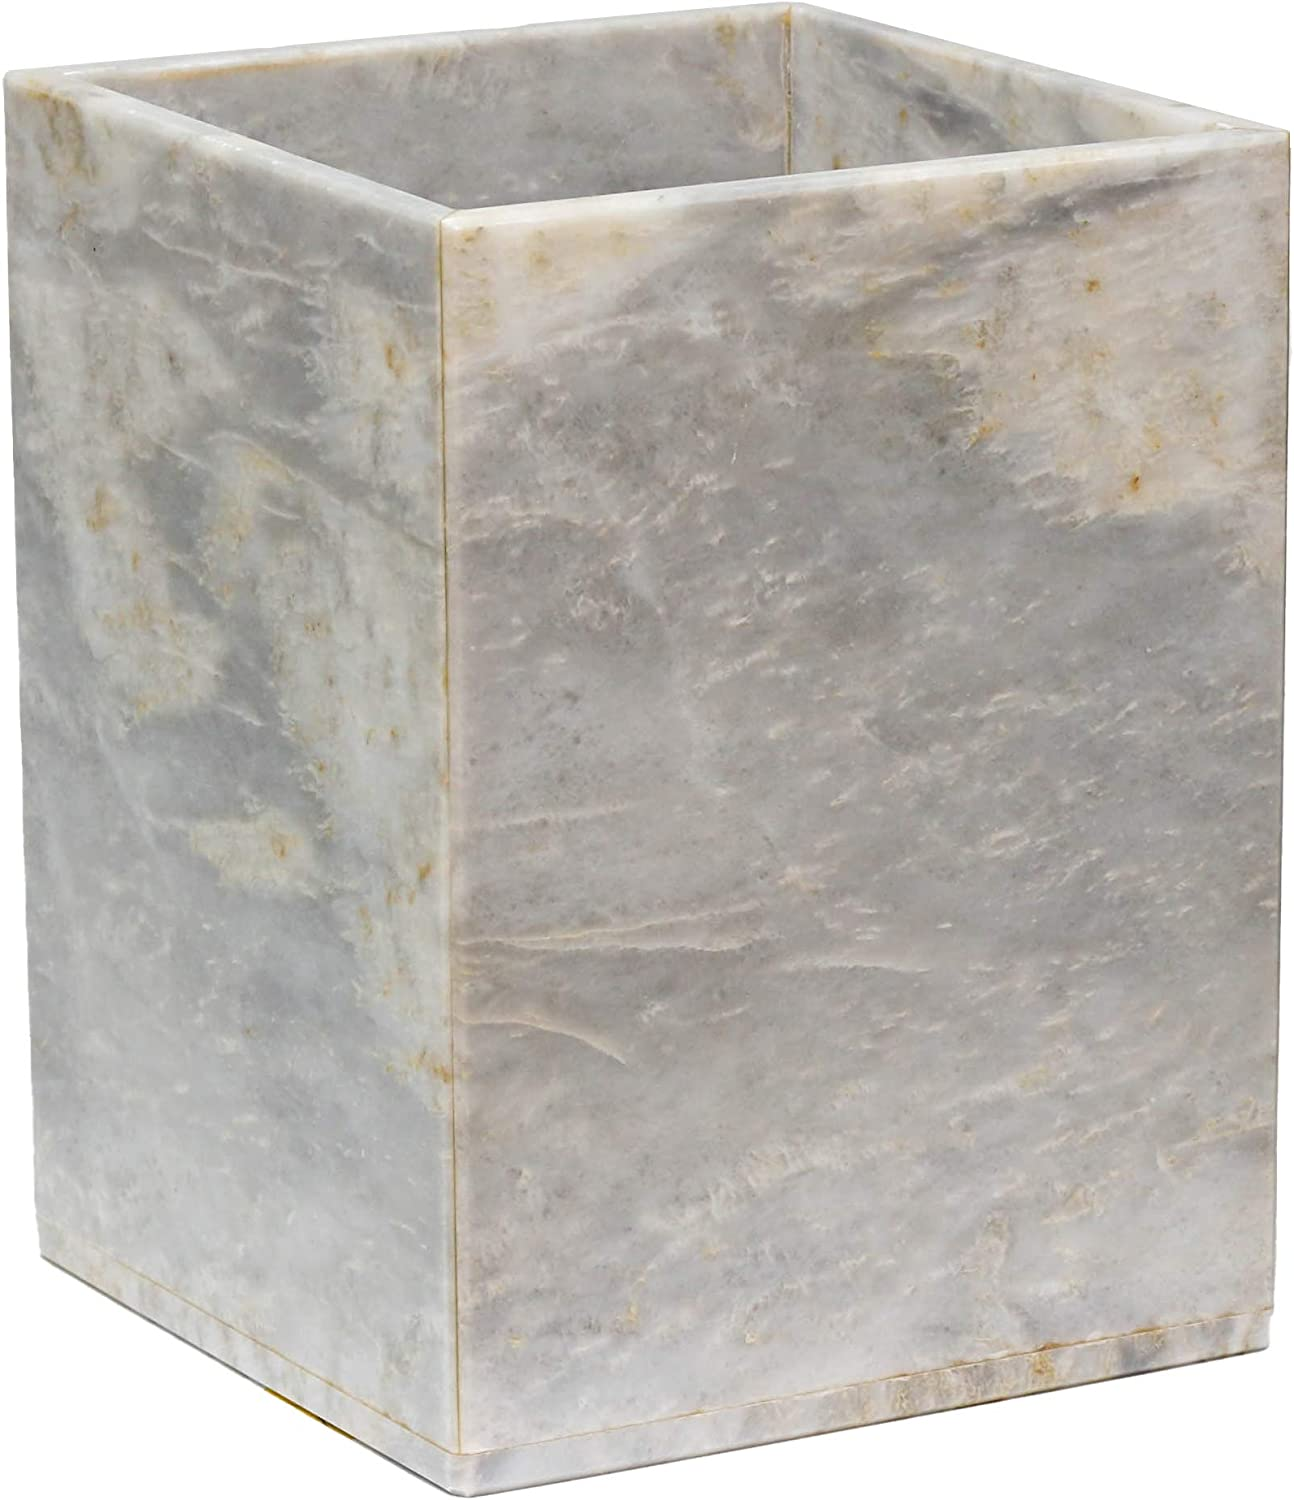 Amazon Com Polished Marble Wastebasket Cloud Gray Shower And Bathroom Accessory Home Kitchen